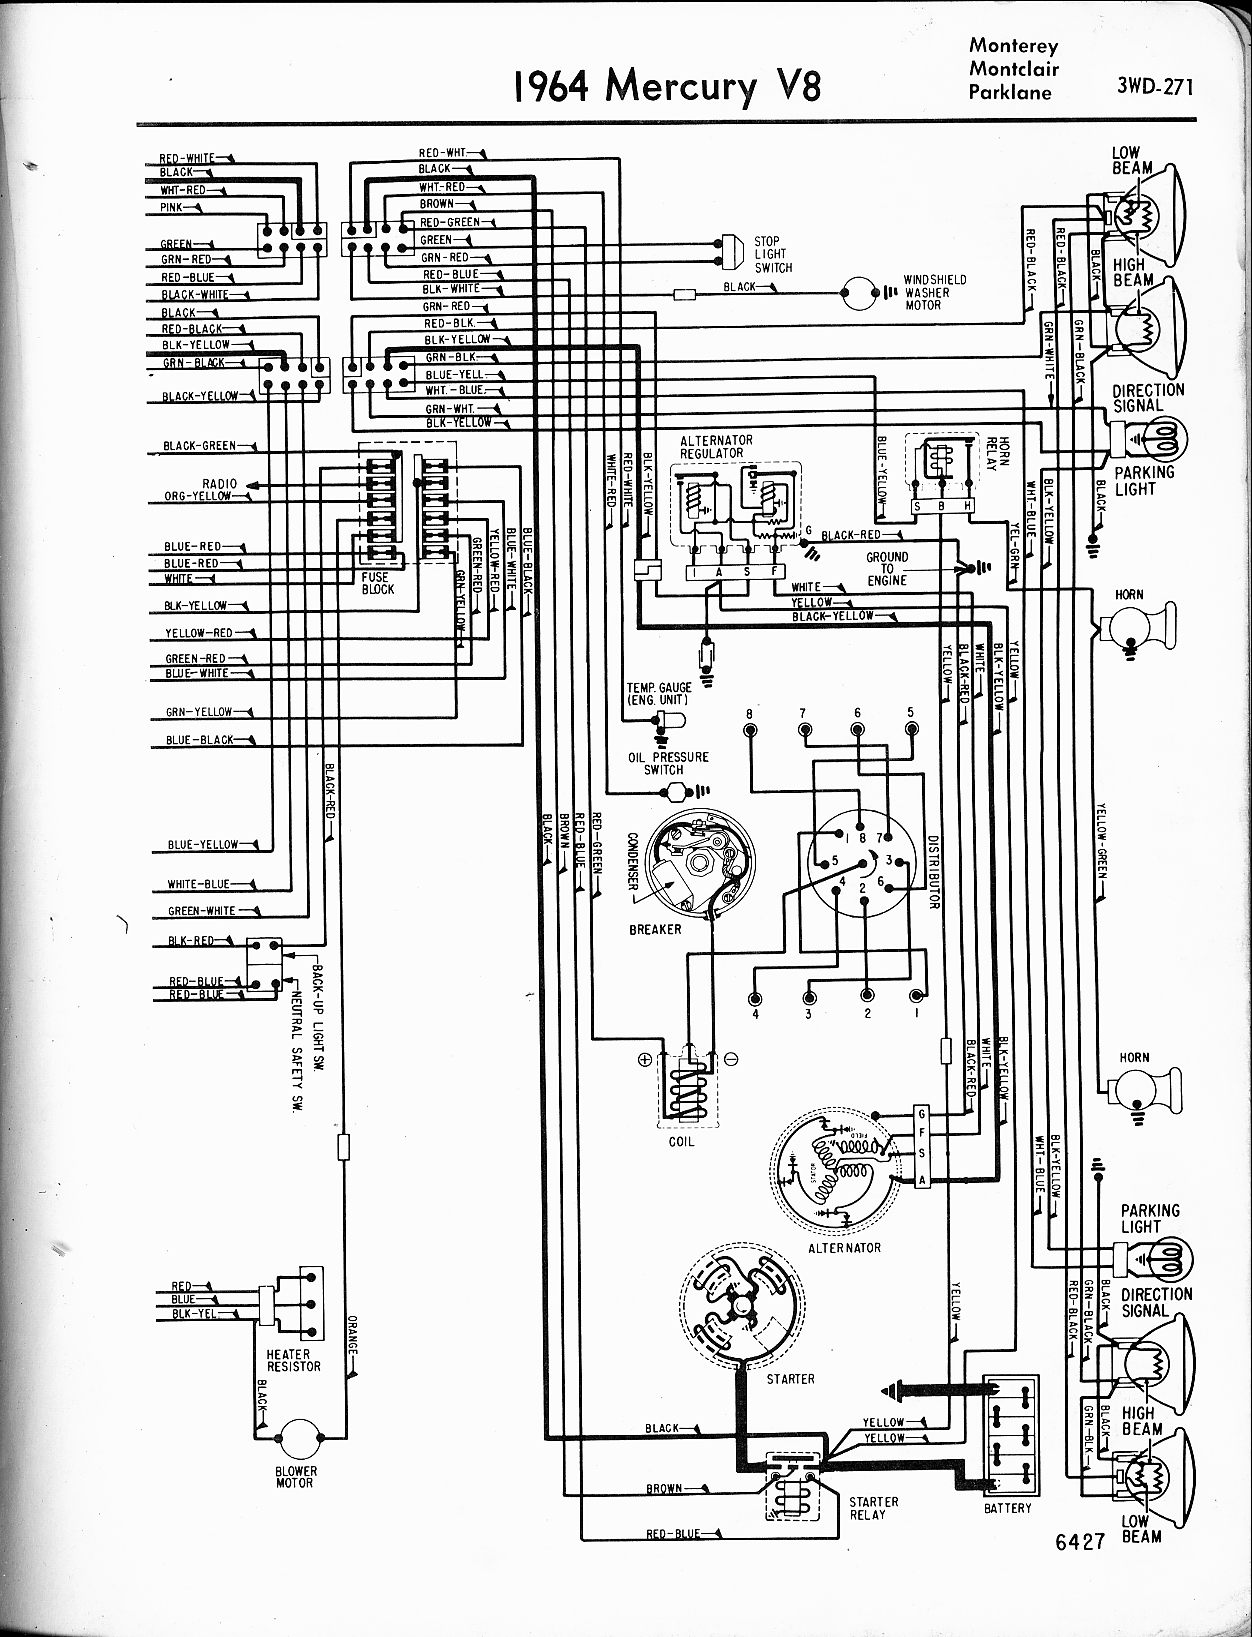 MWire5765 271 mercury wiring diagrams the old car manual project old wiring diagram for emg preamp at gsmportal.co